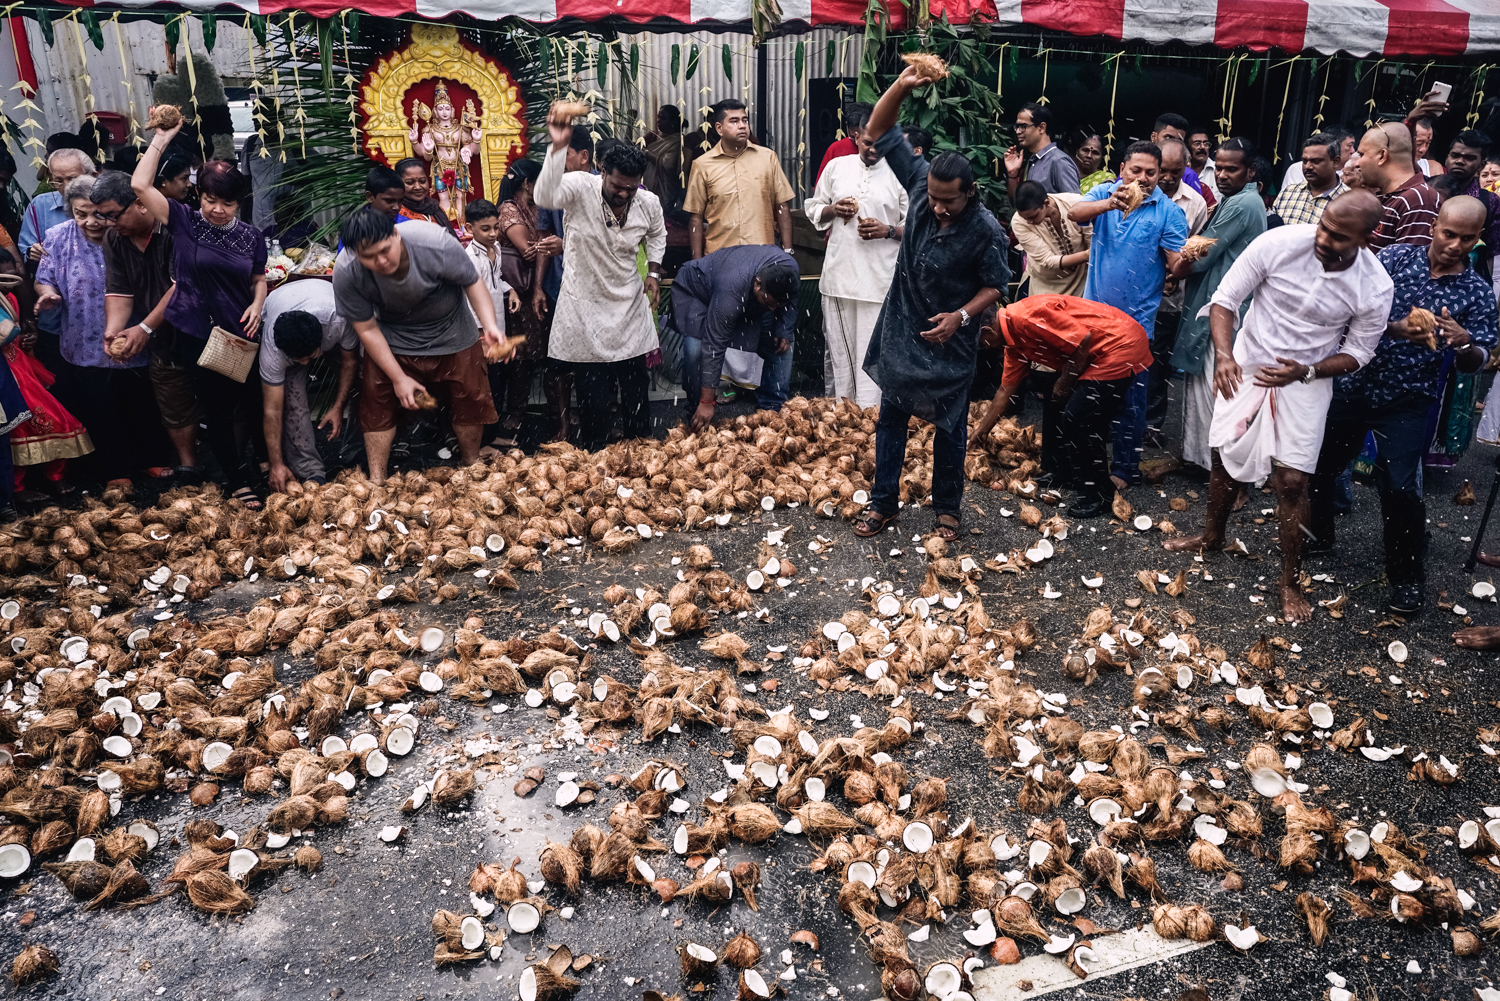 Coconuts are smashed to repent for sins during Thaipusam.